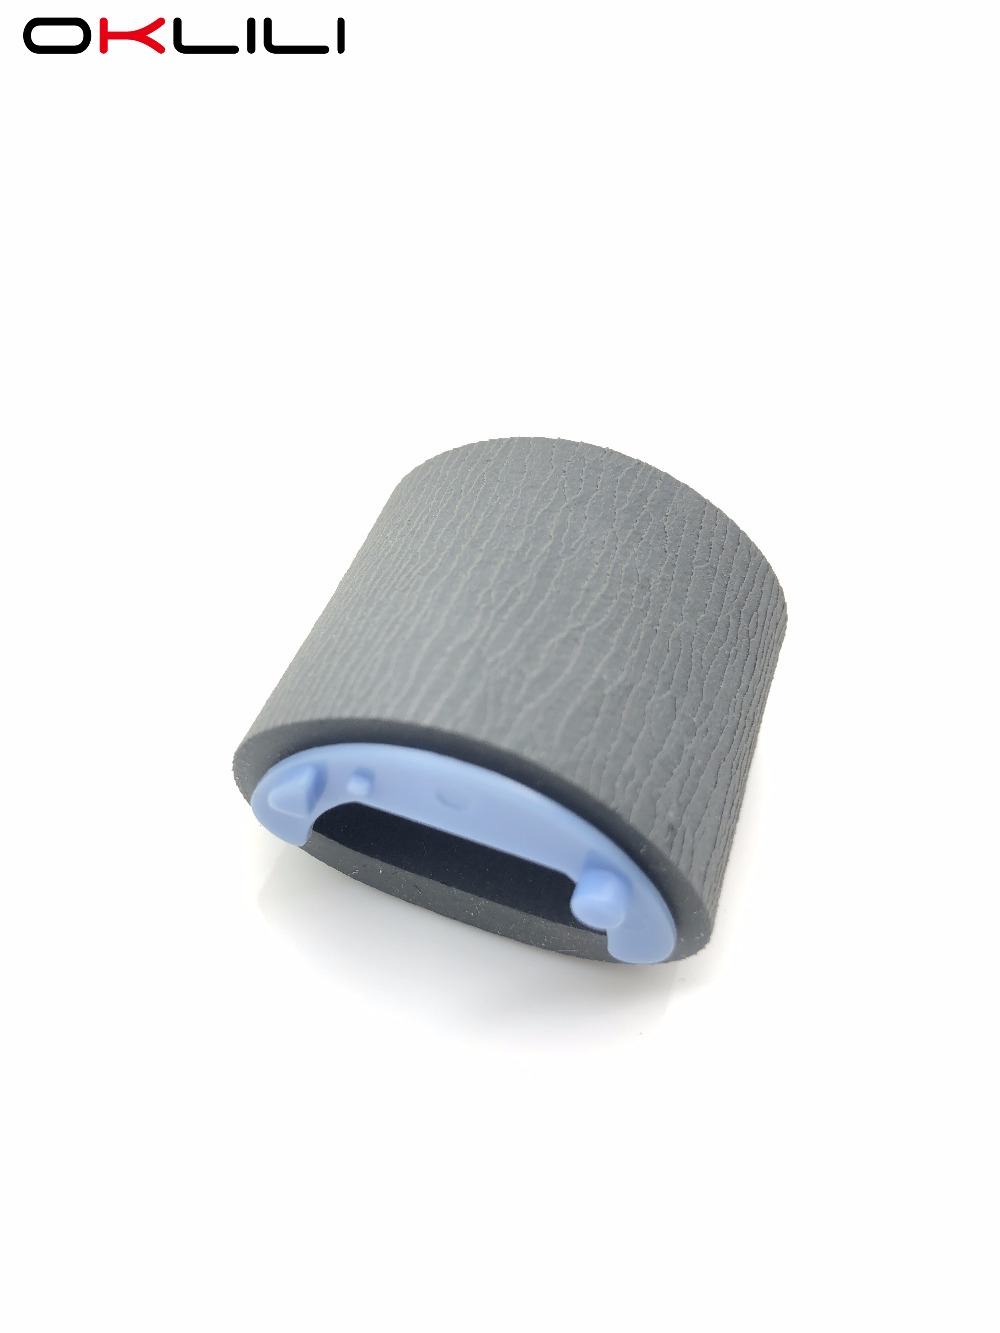 10X RL1-0266-000 RC1-2050-000 Paper Pickup Roller for HP 1010 1012 1015 1018 1020 1022 3015 3020 3030 3050 3052 3055 M1005 M1319 compatible new rl1 0540 000 rl1 0540 tray 2 paper pickup roller for hp 1160 1320 3390 3392 2727 2014 2015 lbp3300 3310 3360 3370